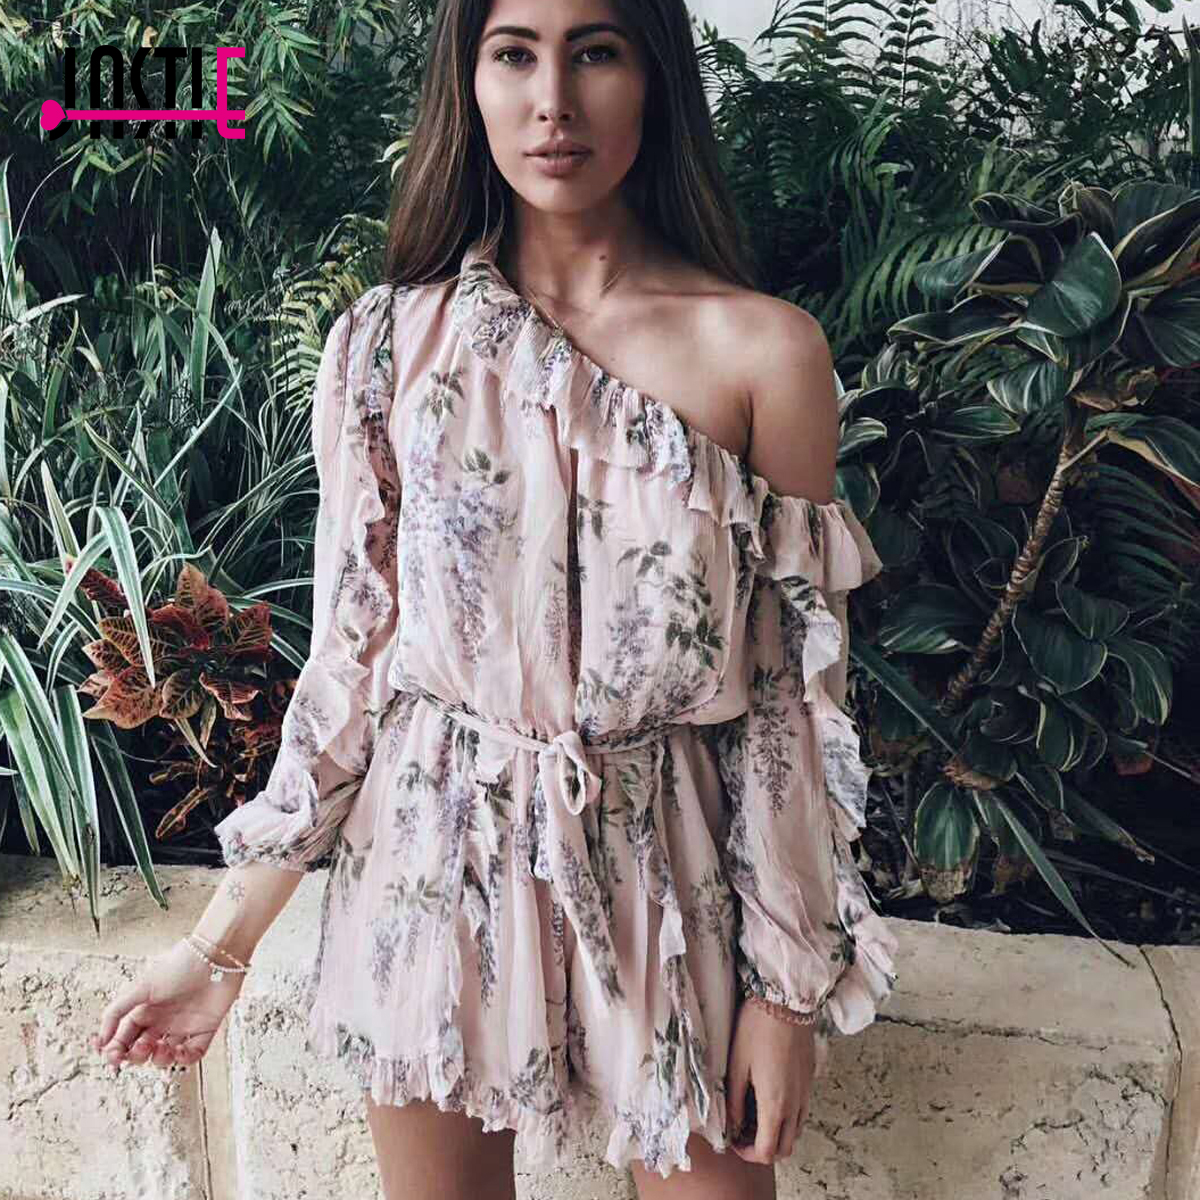 f3664eda3c7f Jastie Ruffled Off Shoulder Playsuit Floral Print Women Romper 2018 Summer  Rompers Boho Chic Hippie Beach Playsuits Jumpsuit -in Rompers from Women s  ...